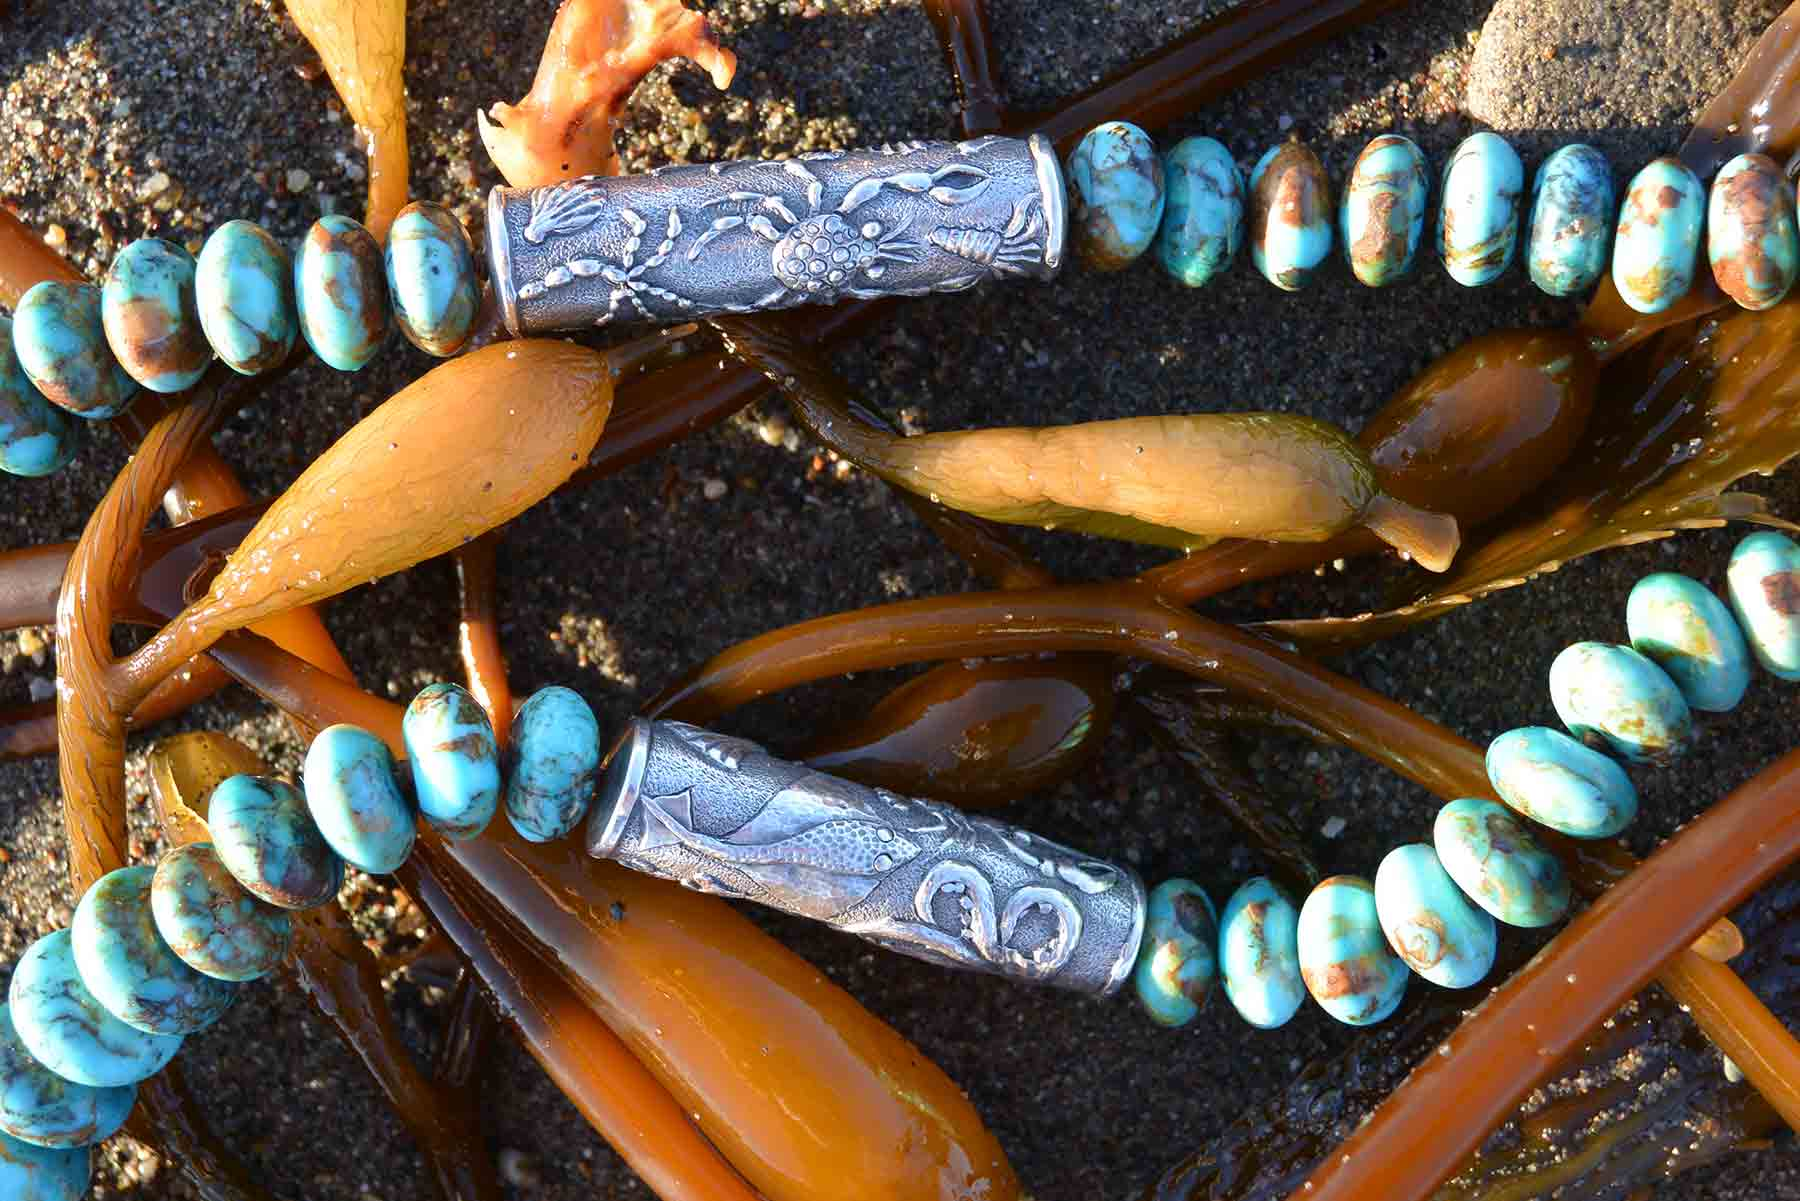 Giant perennial kelp sets off a necklace of Arizona Boulder turquoise rondelles and Old World cast 925 silver cylinders bearing motifs of the Sea Creatures Collection, by Kamila Kubelik.